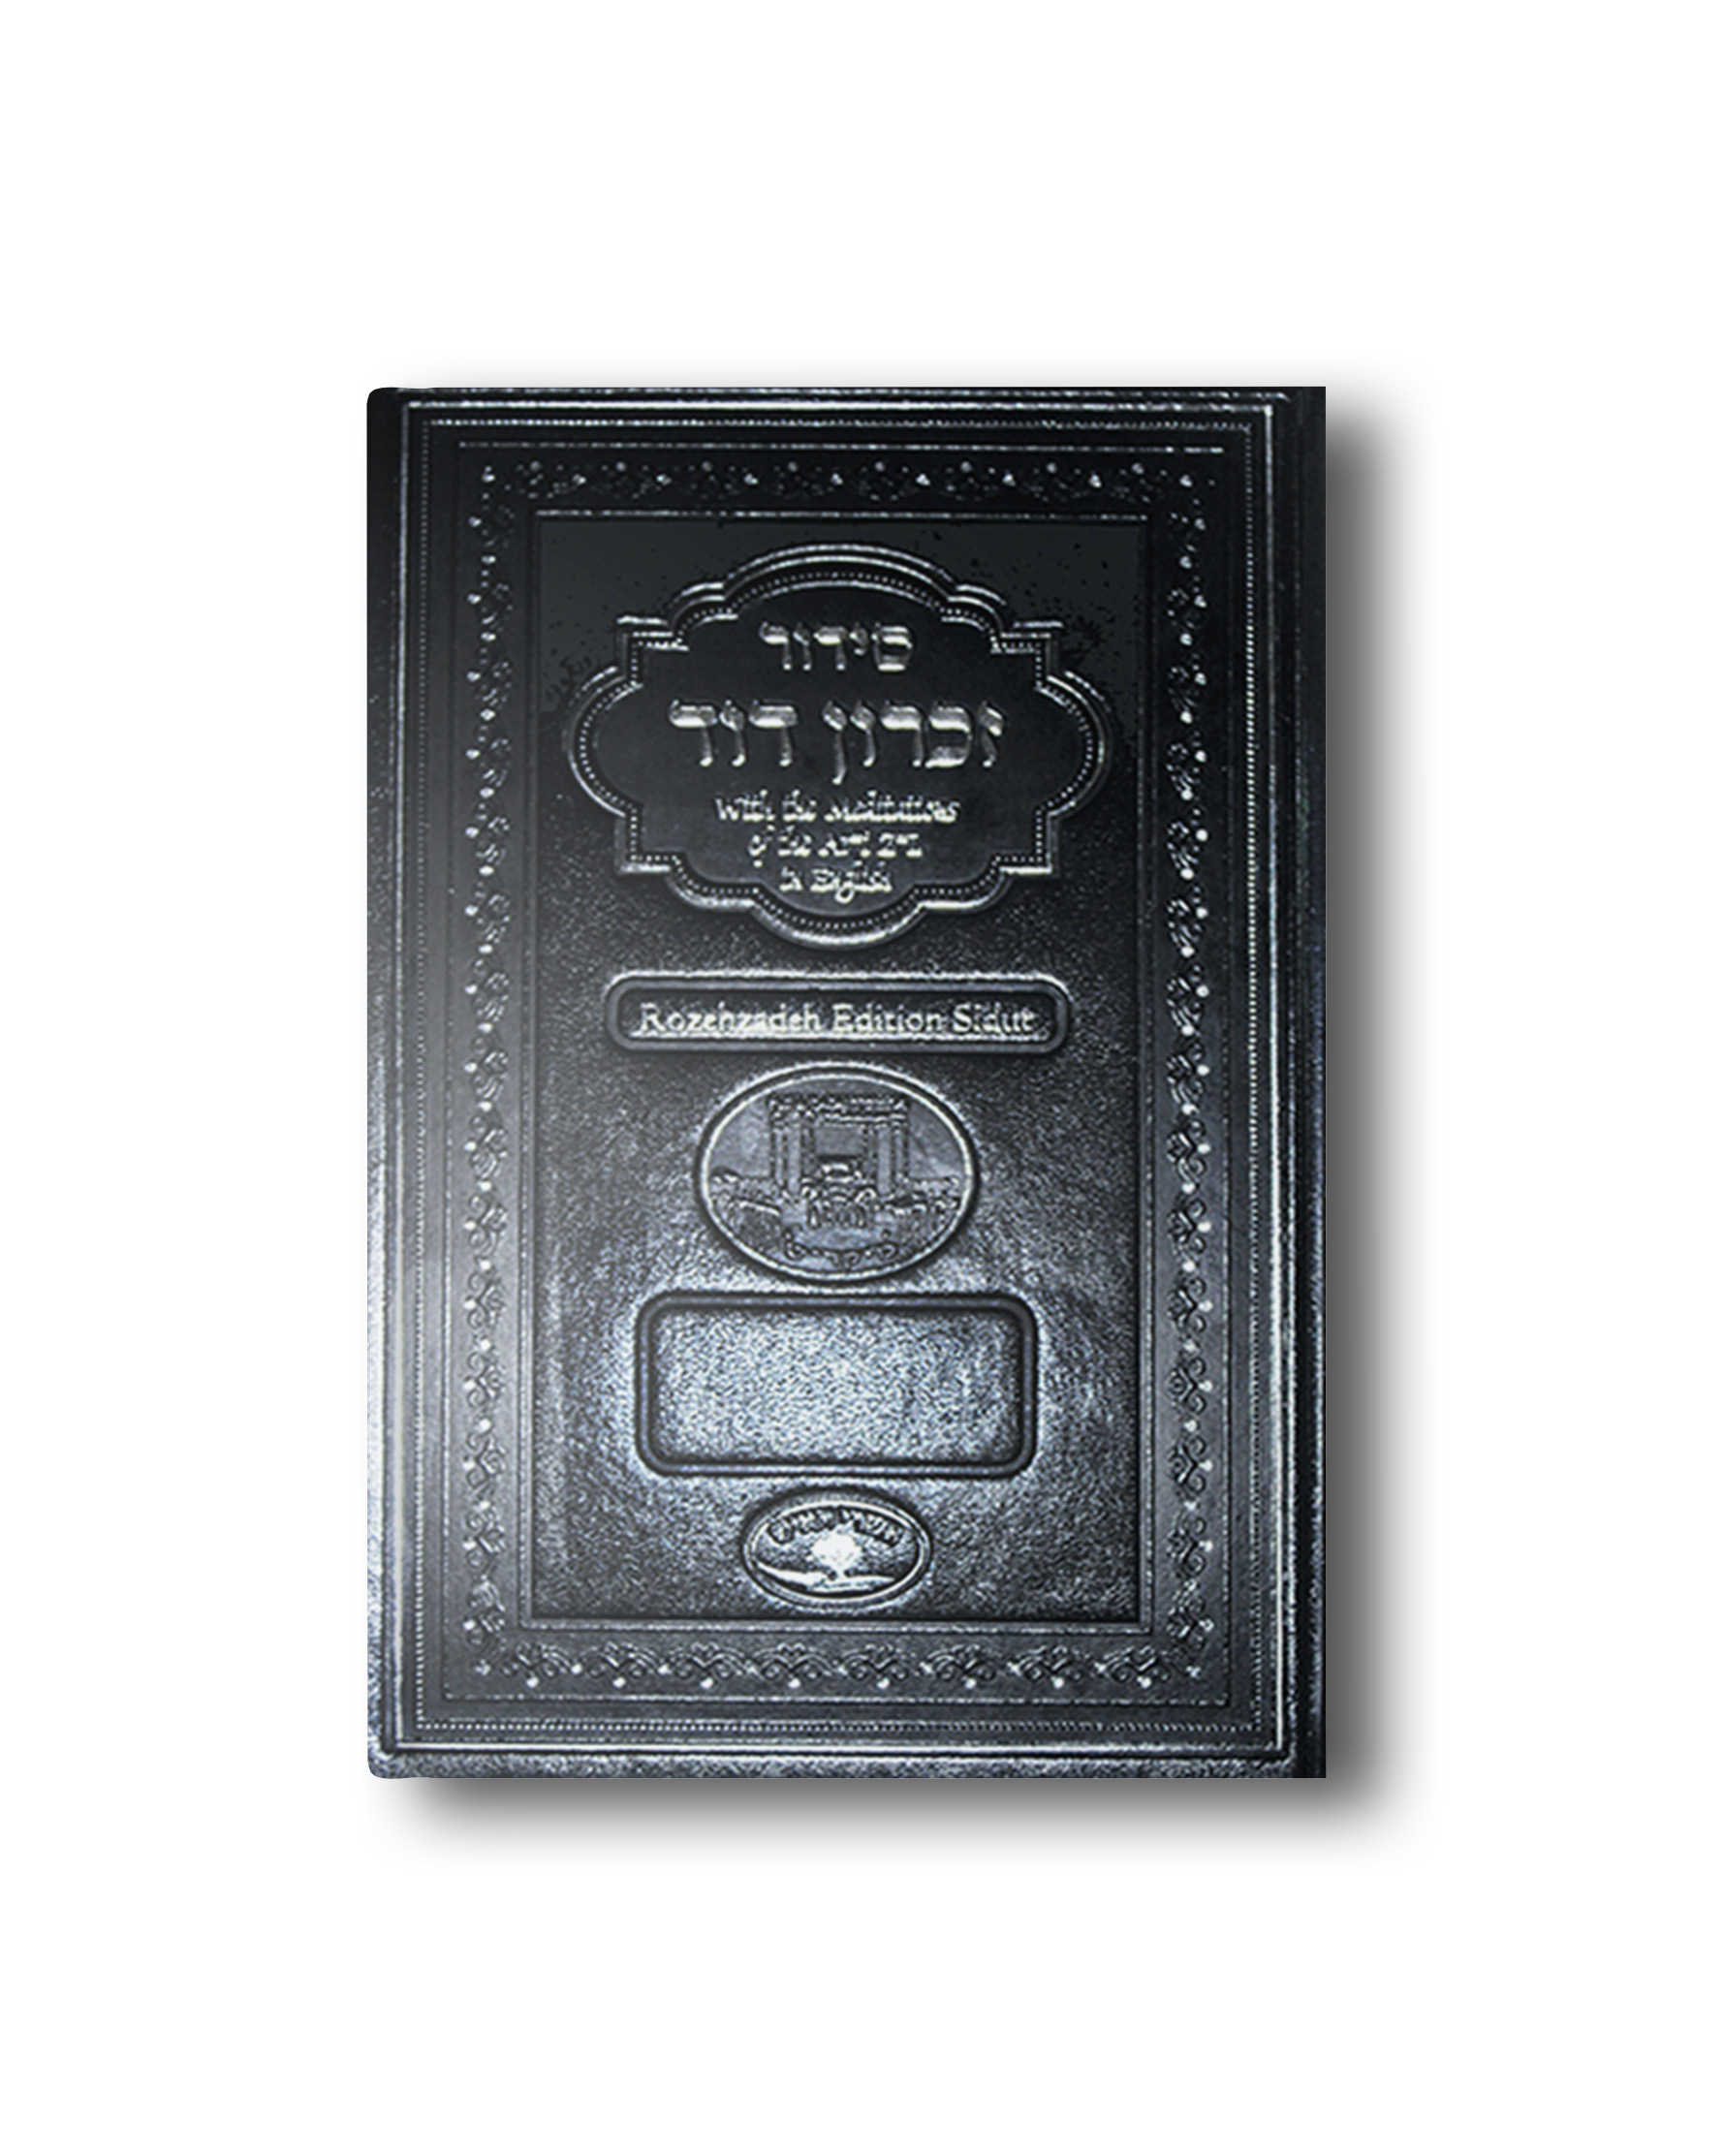 Kabbalistic Siddur Zichron David - Second Edition